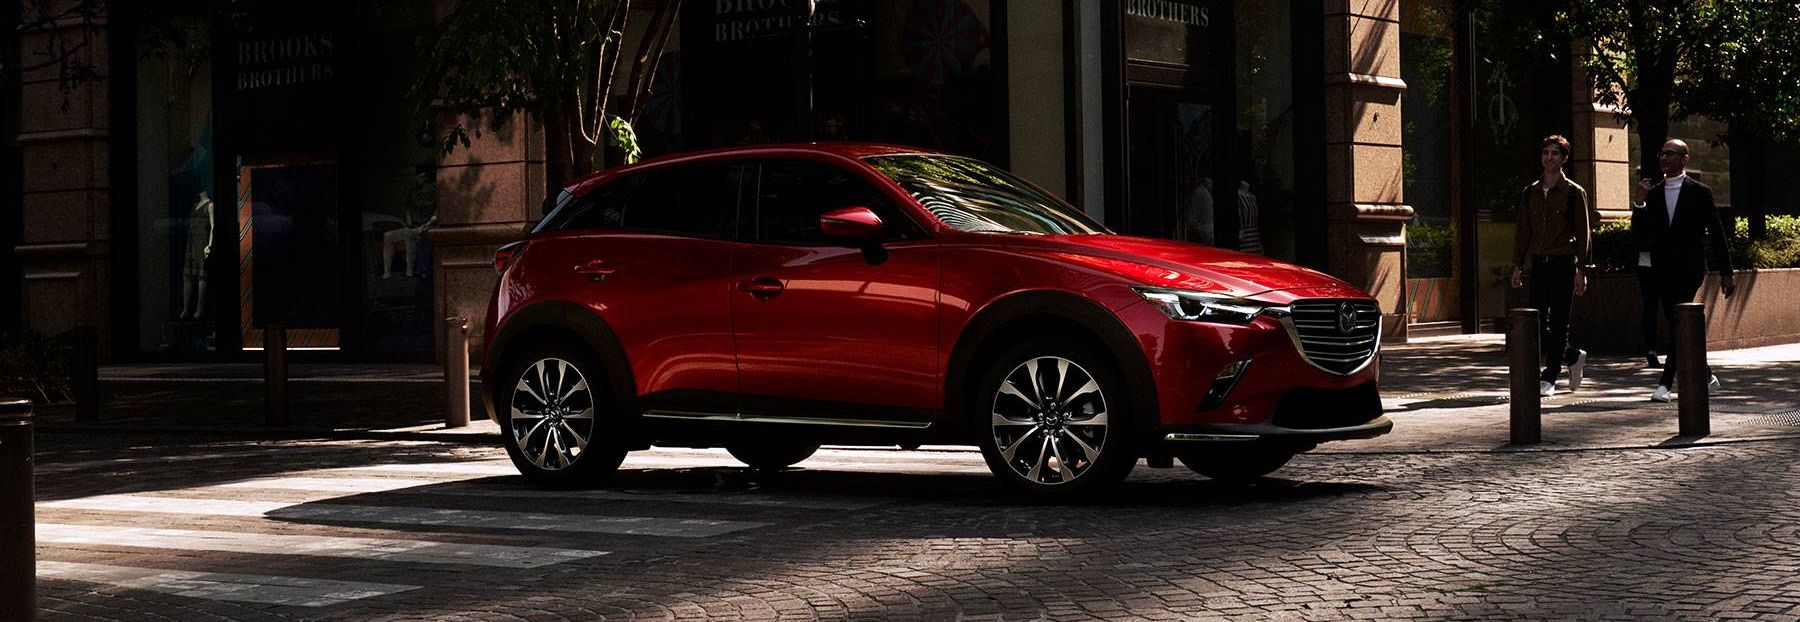 Mazda SUV Buying Guide near Sacramento, CA